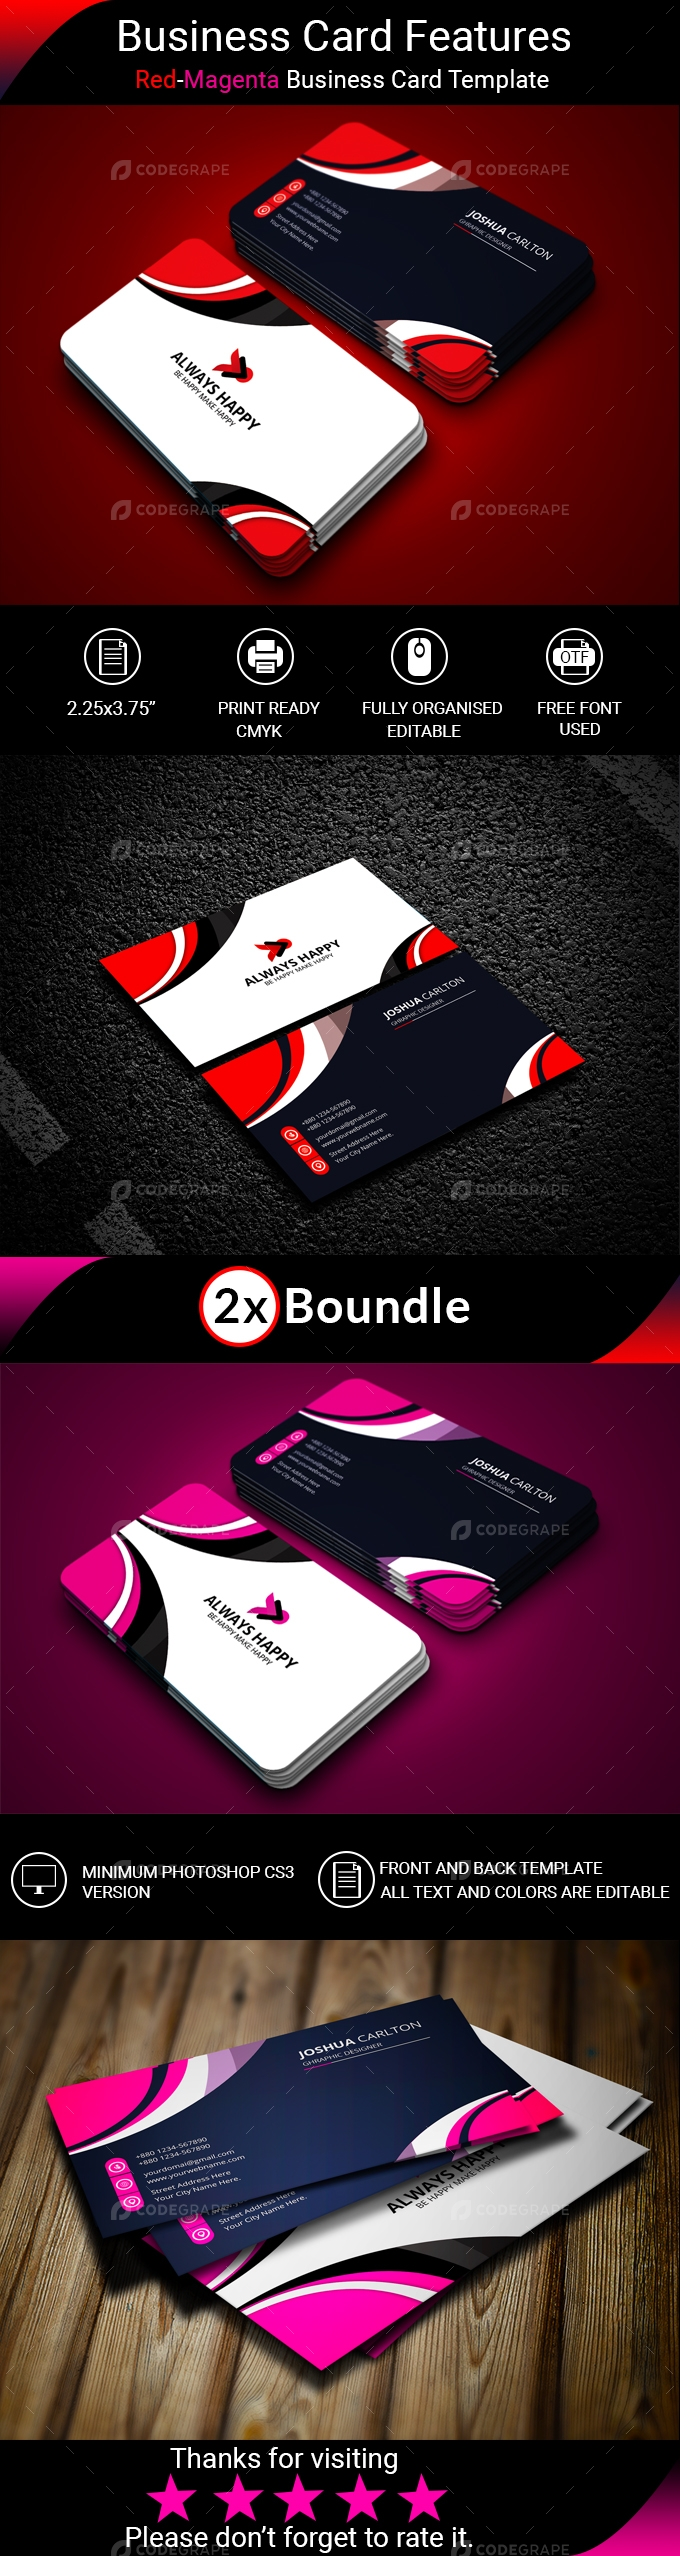 Red-Magenta Business Card